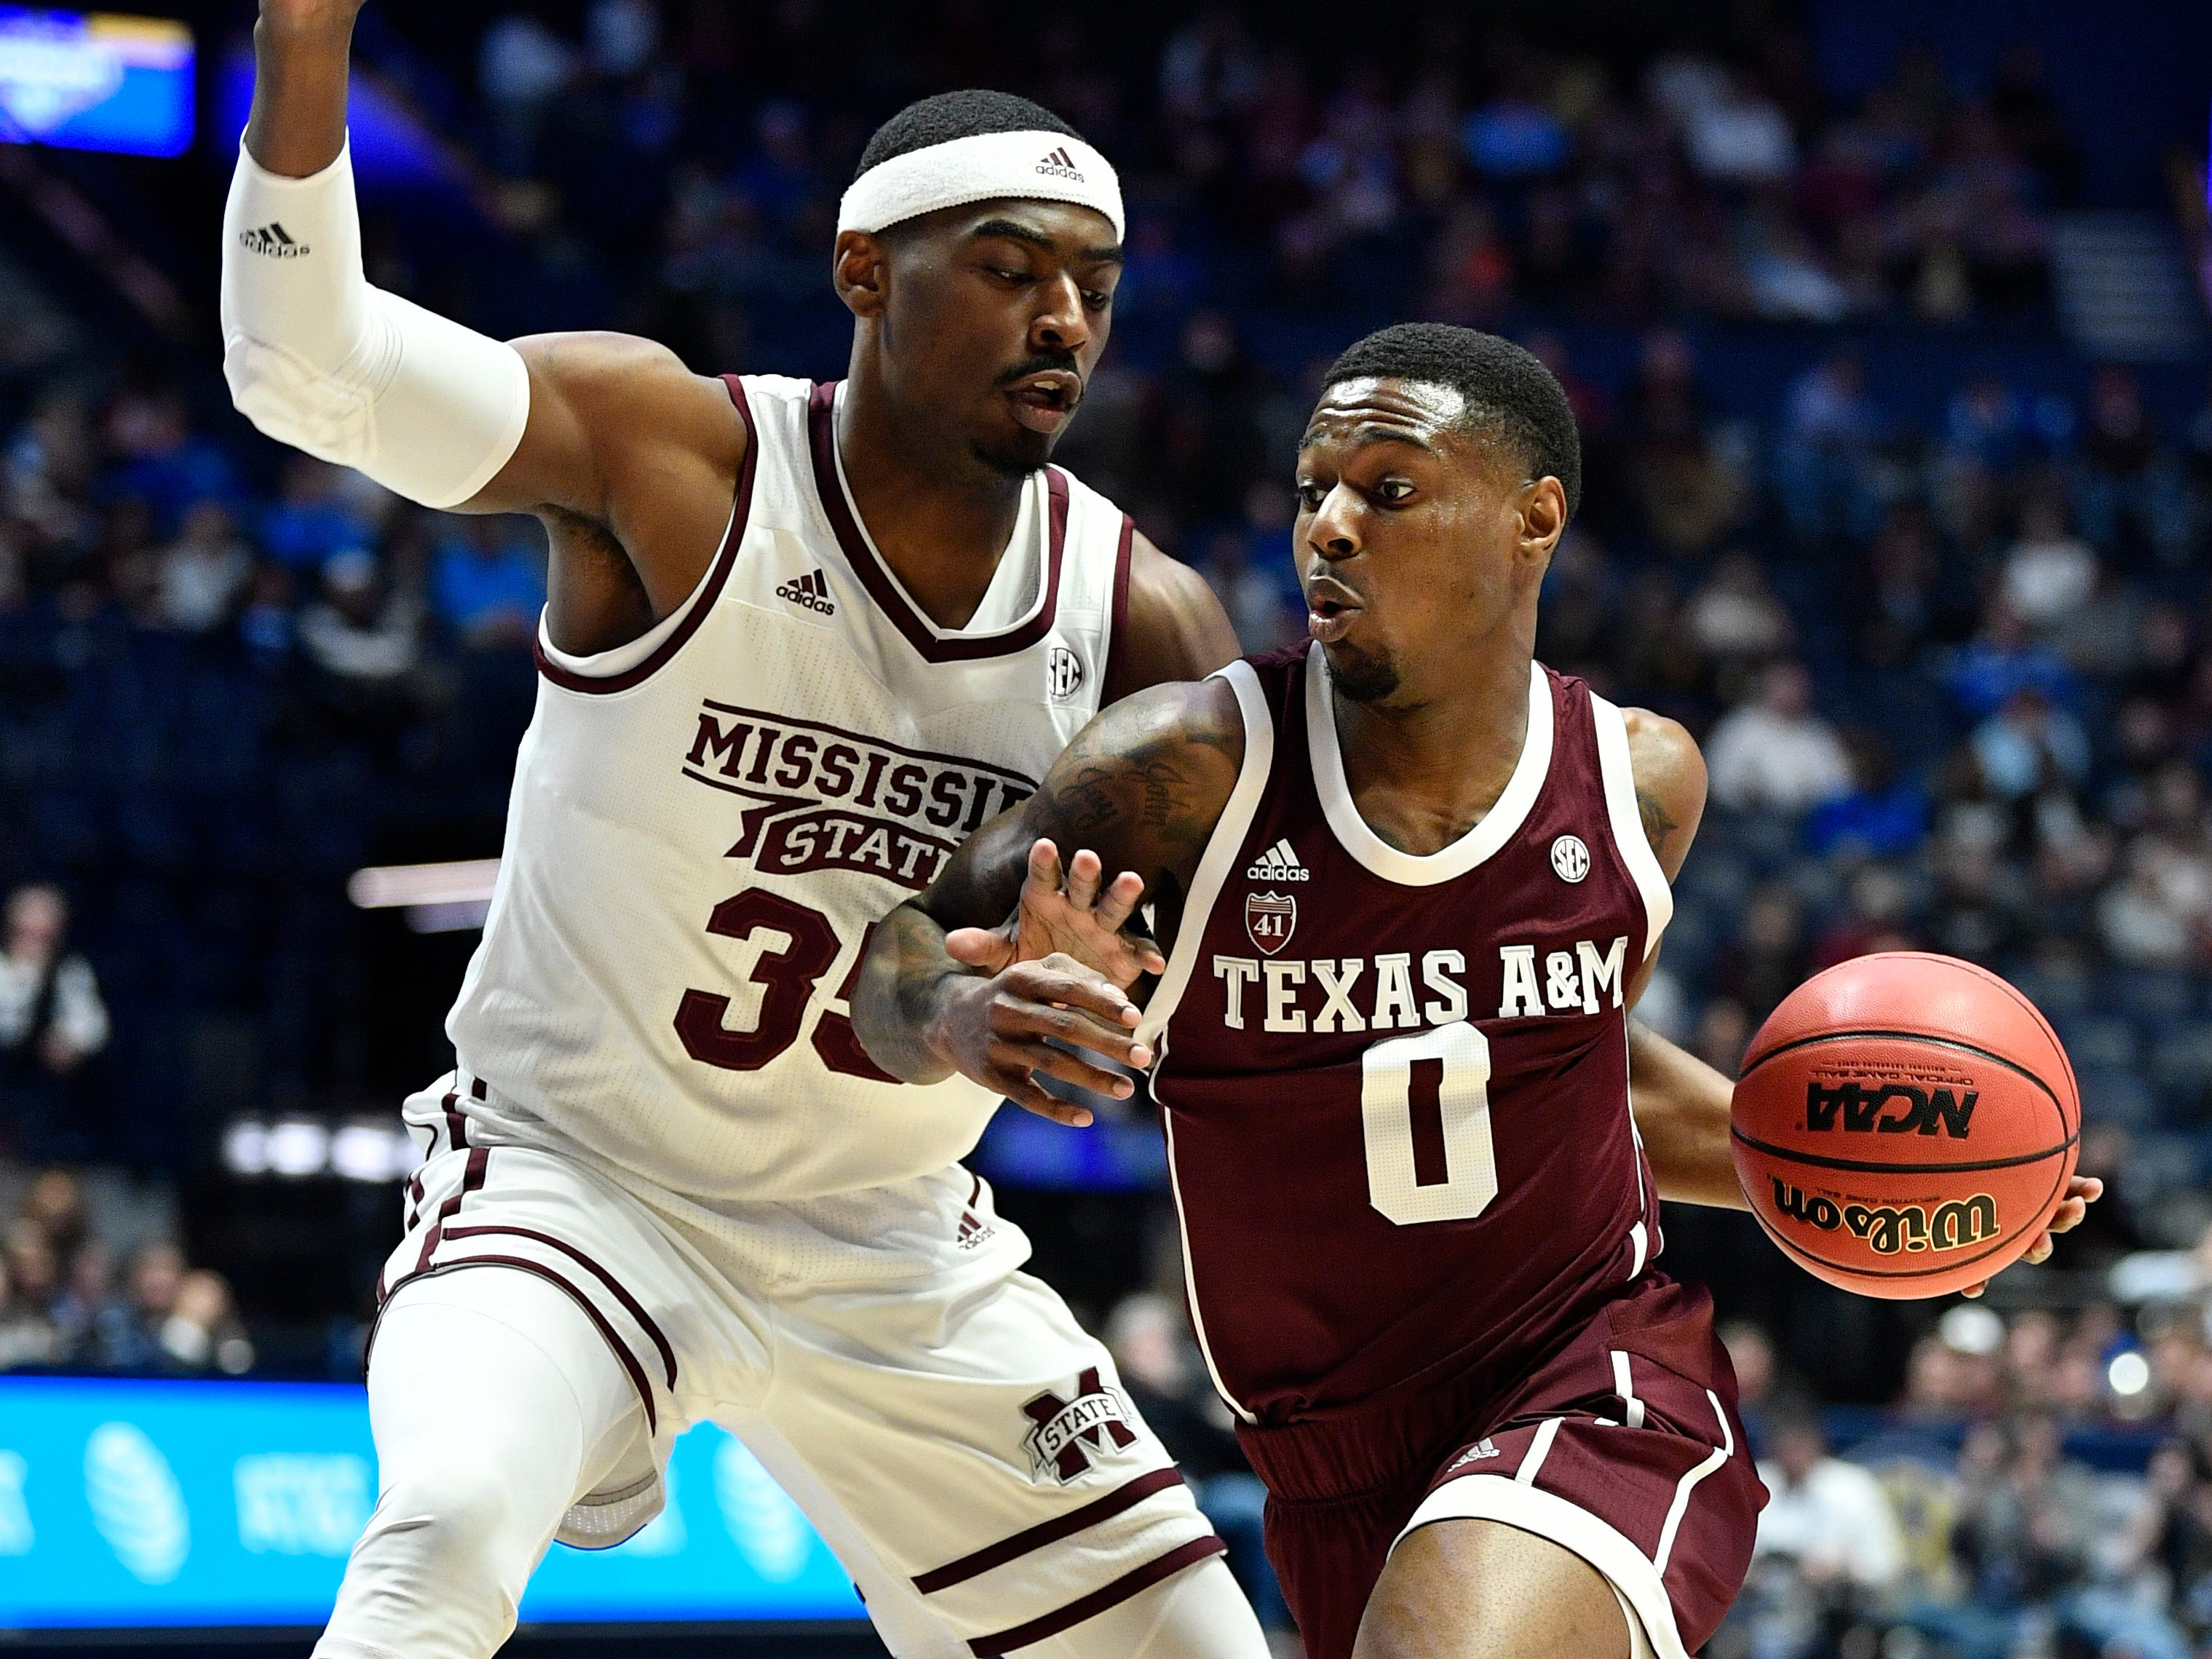 Texas A&M guard Jay Jay Chandler (0) moves the ball defended by Mississippi State forward Aric Holman (35) during the first half of the SEC Men's Basketball Tournament game at Bridgestone Arena in Nashville, Tenn., Thursday, March 14, 2019.